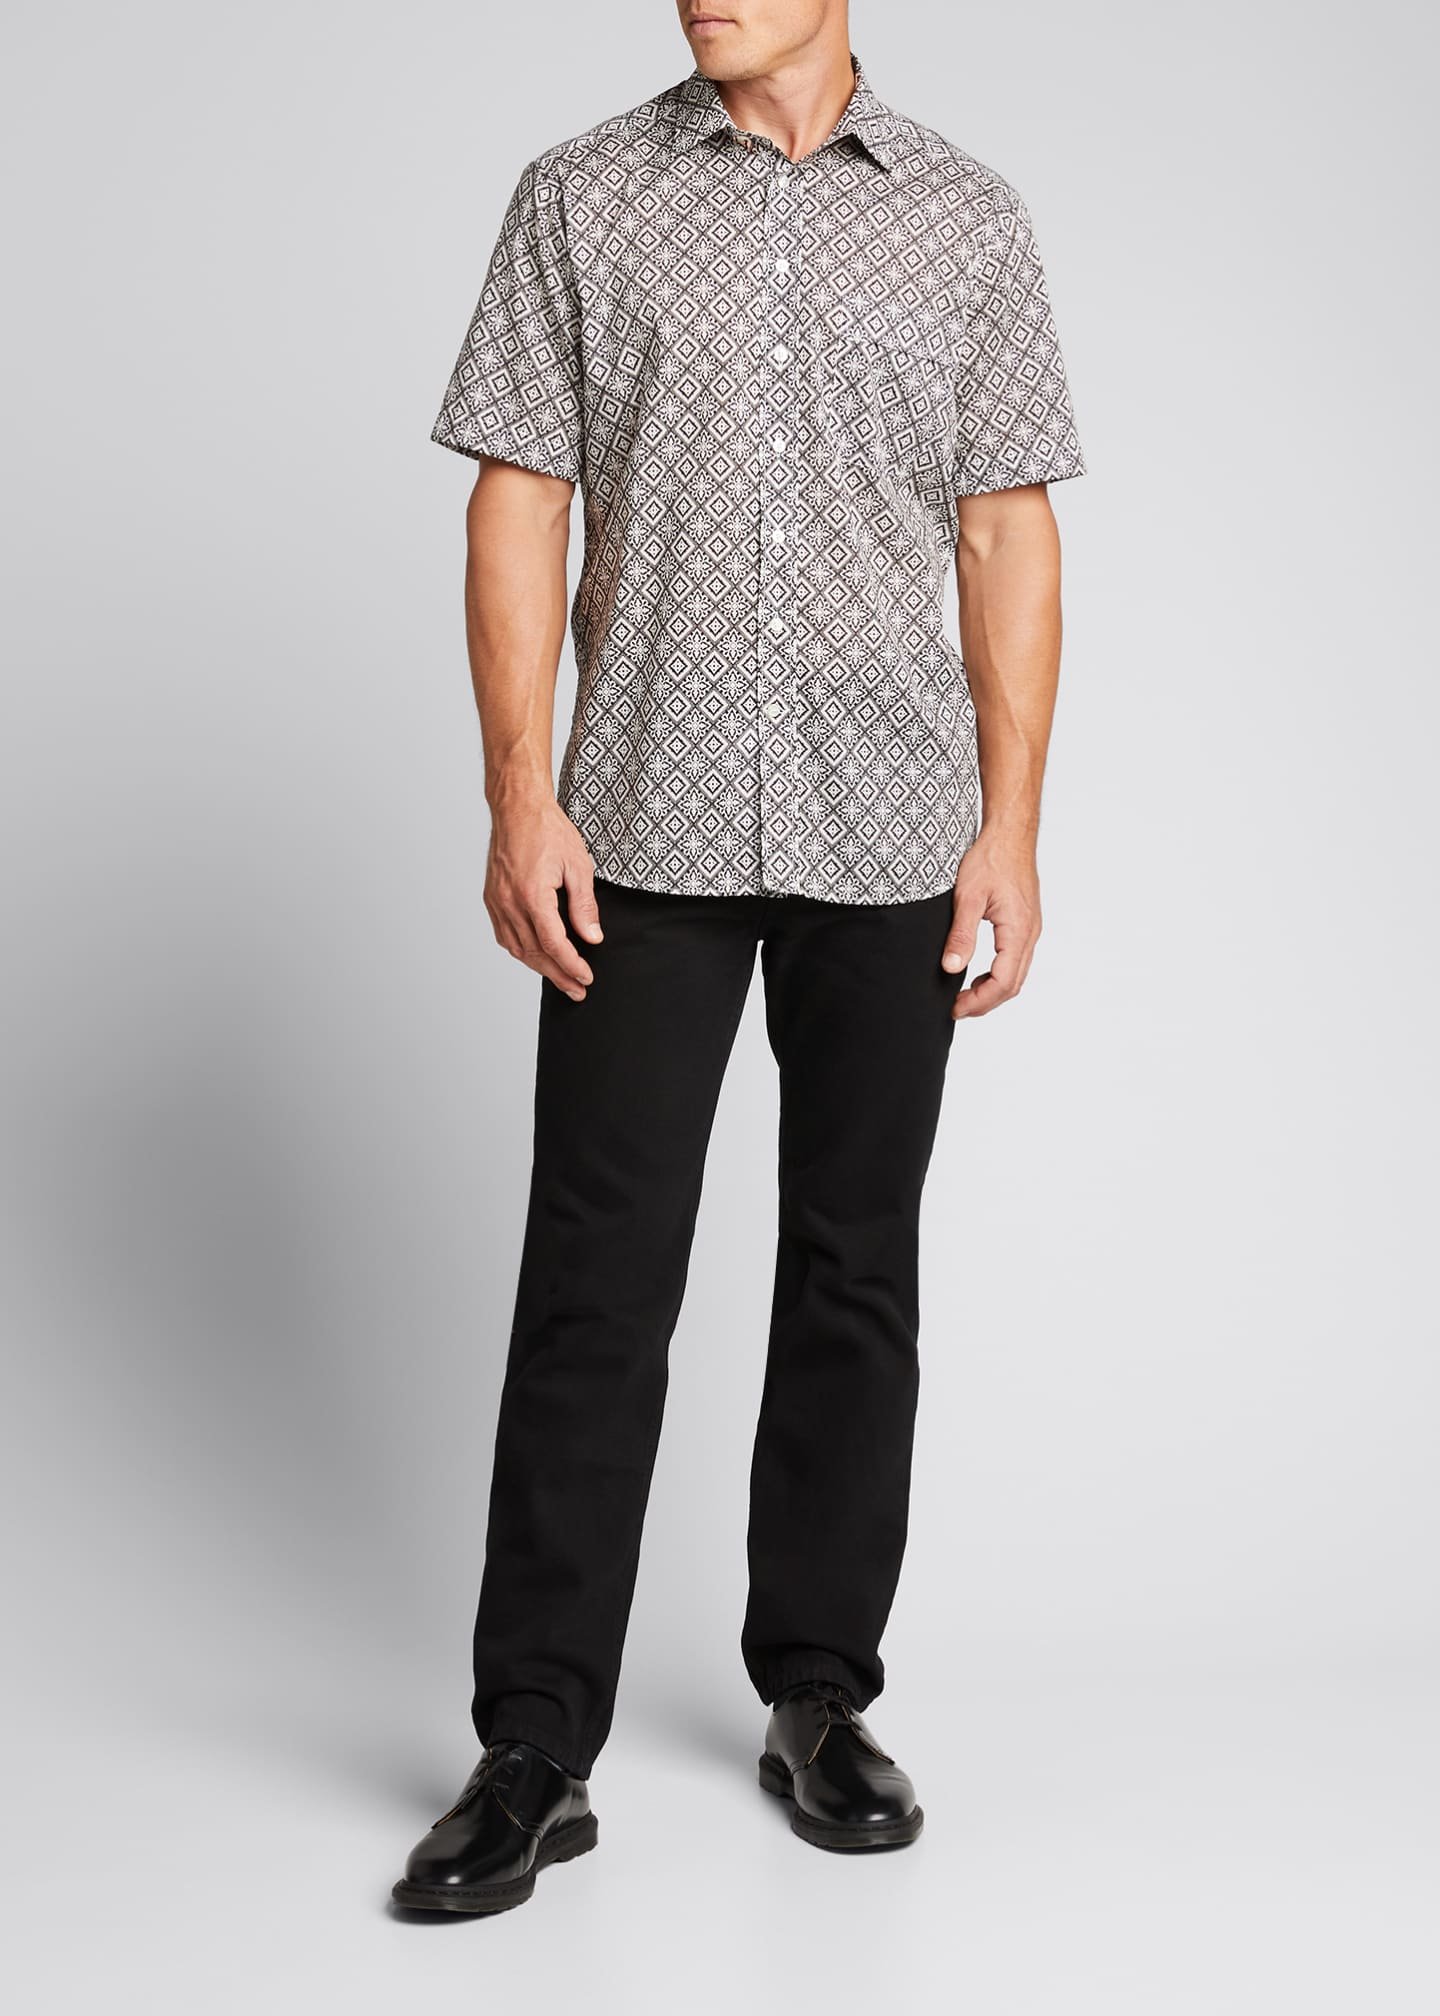 Image 1 of 5: Men's Bandana-Print Sport Shirt